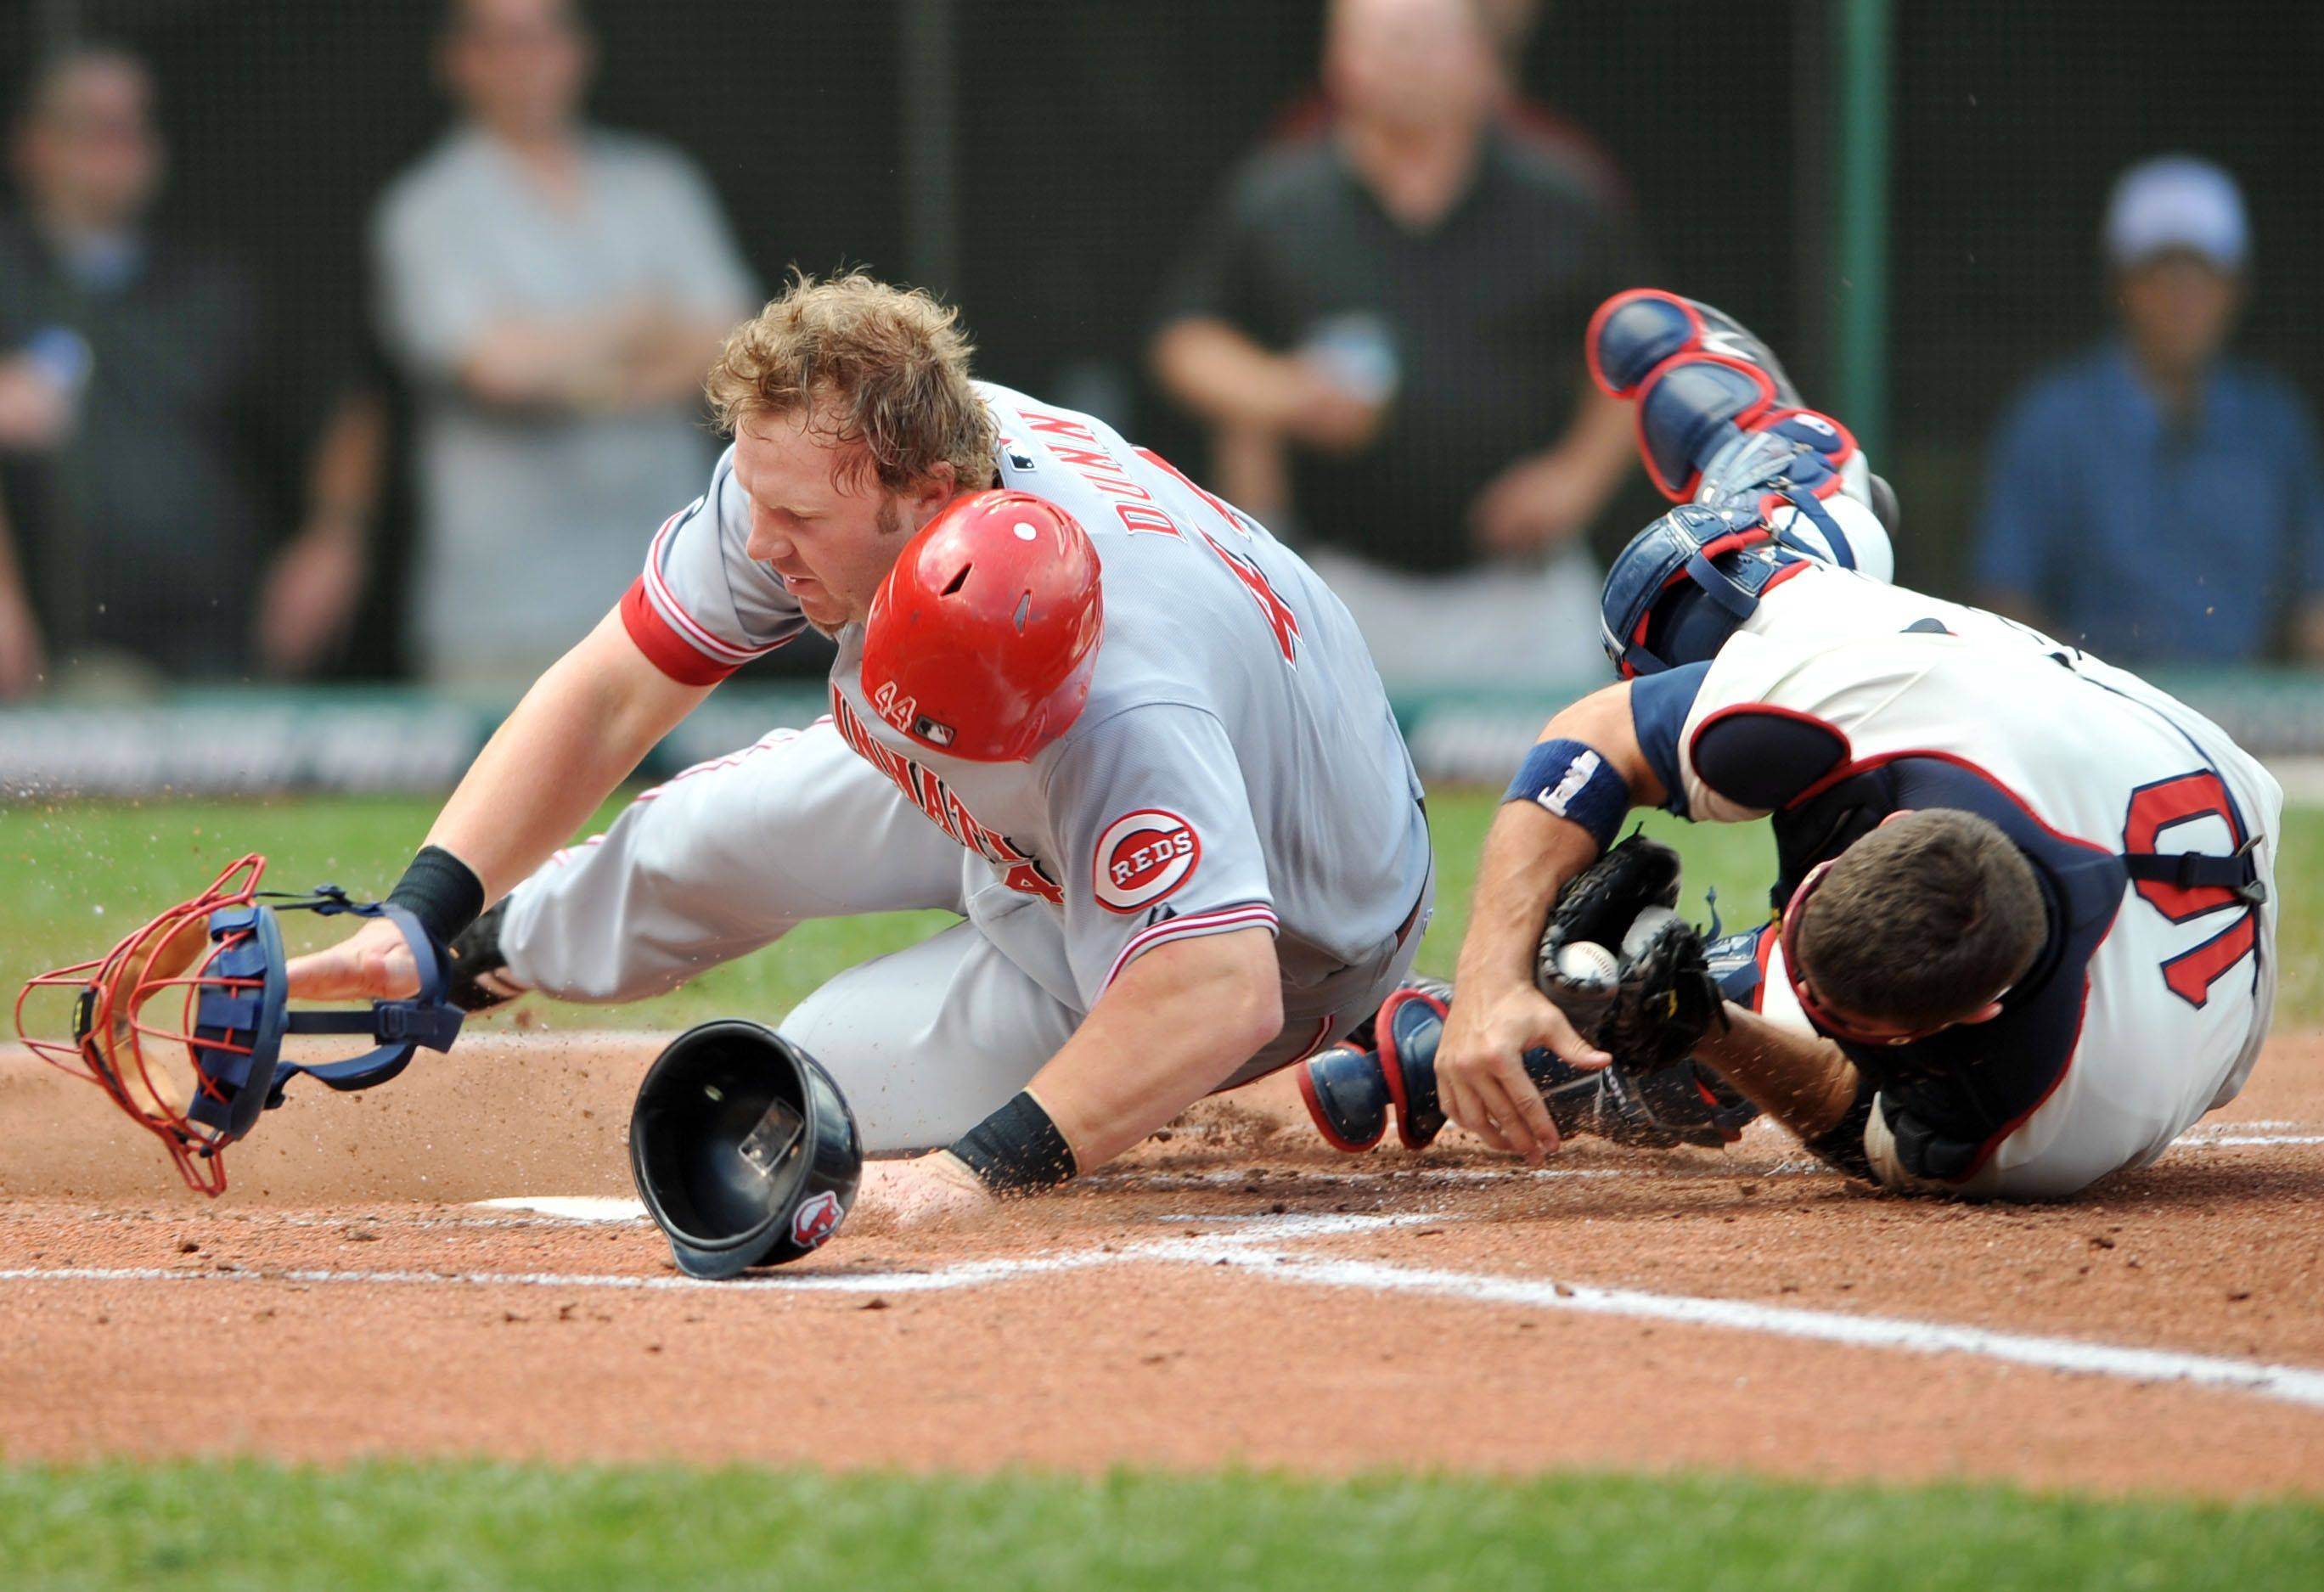 Cleveland Indians catcher Kelly Shoppach, right, holds on to the ball after tagging out Cincinnati Reds' Adam Dunn on Sunday, June 29, 2008, in Cleveland.